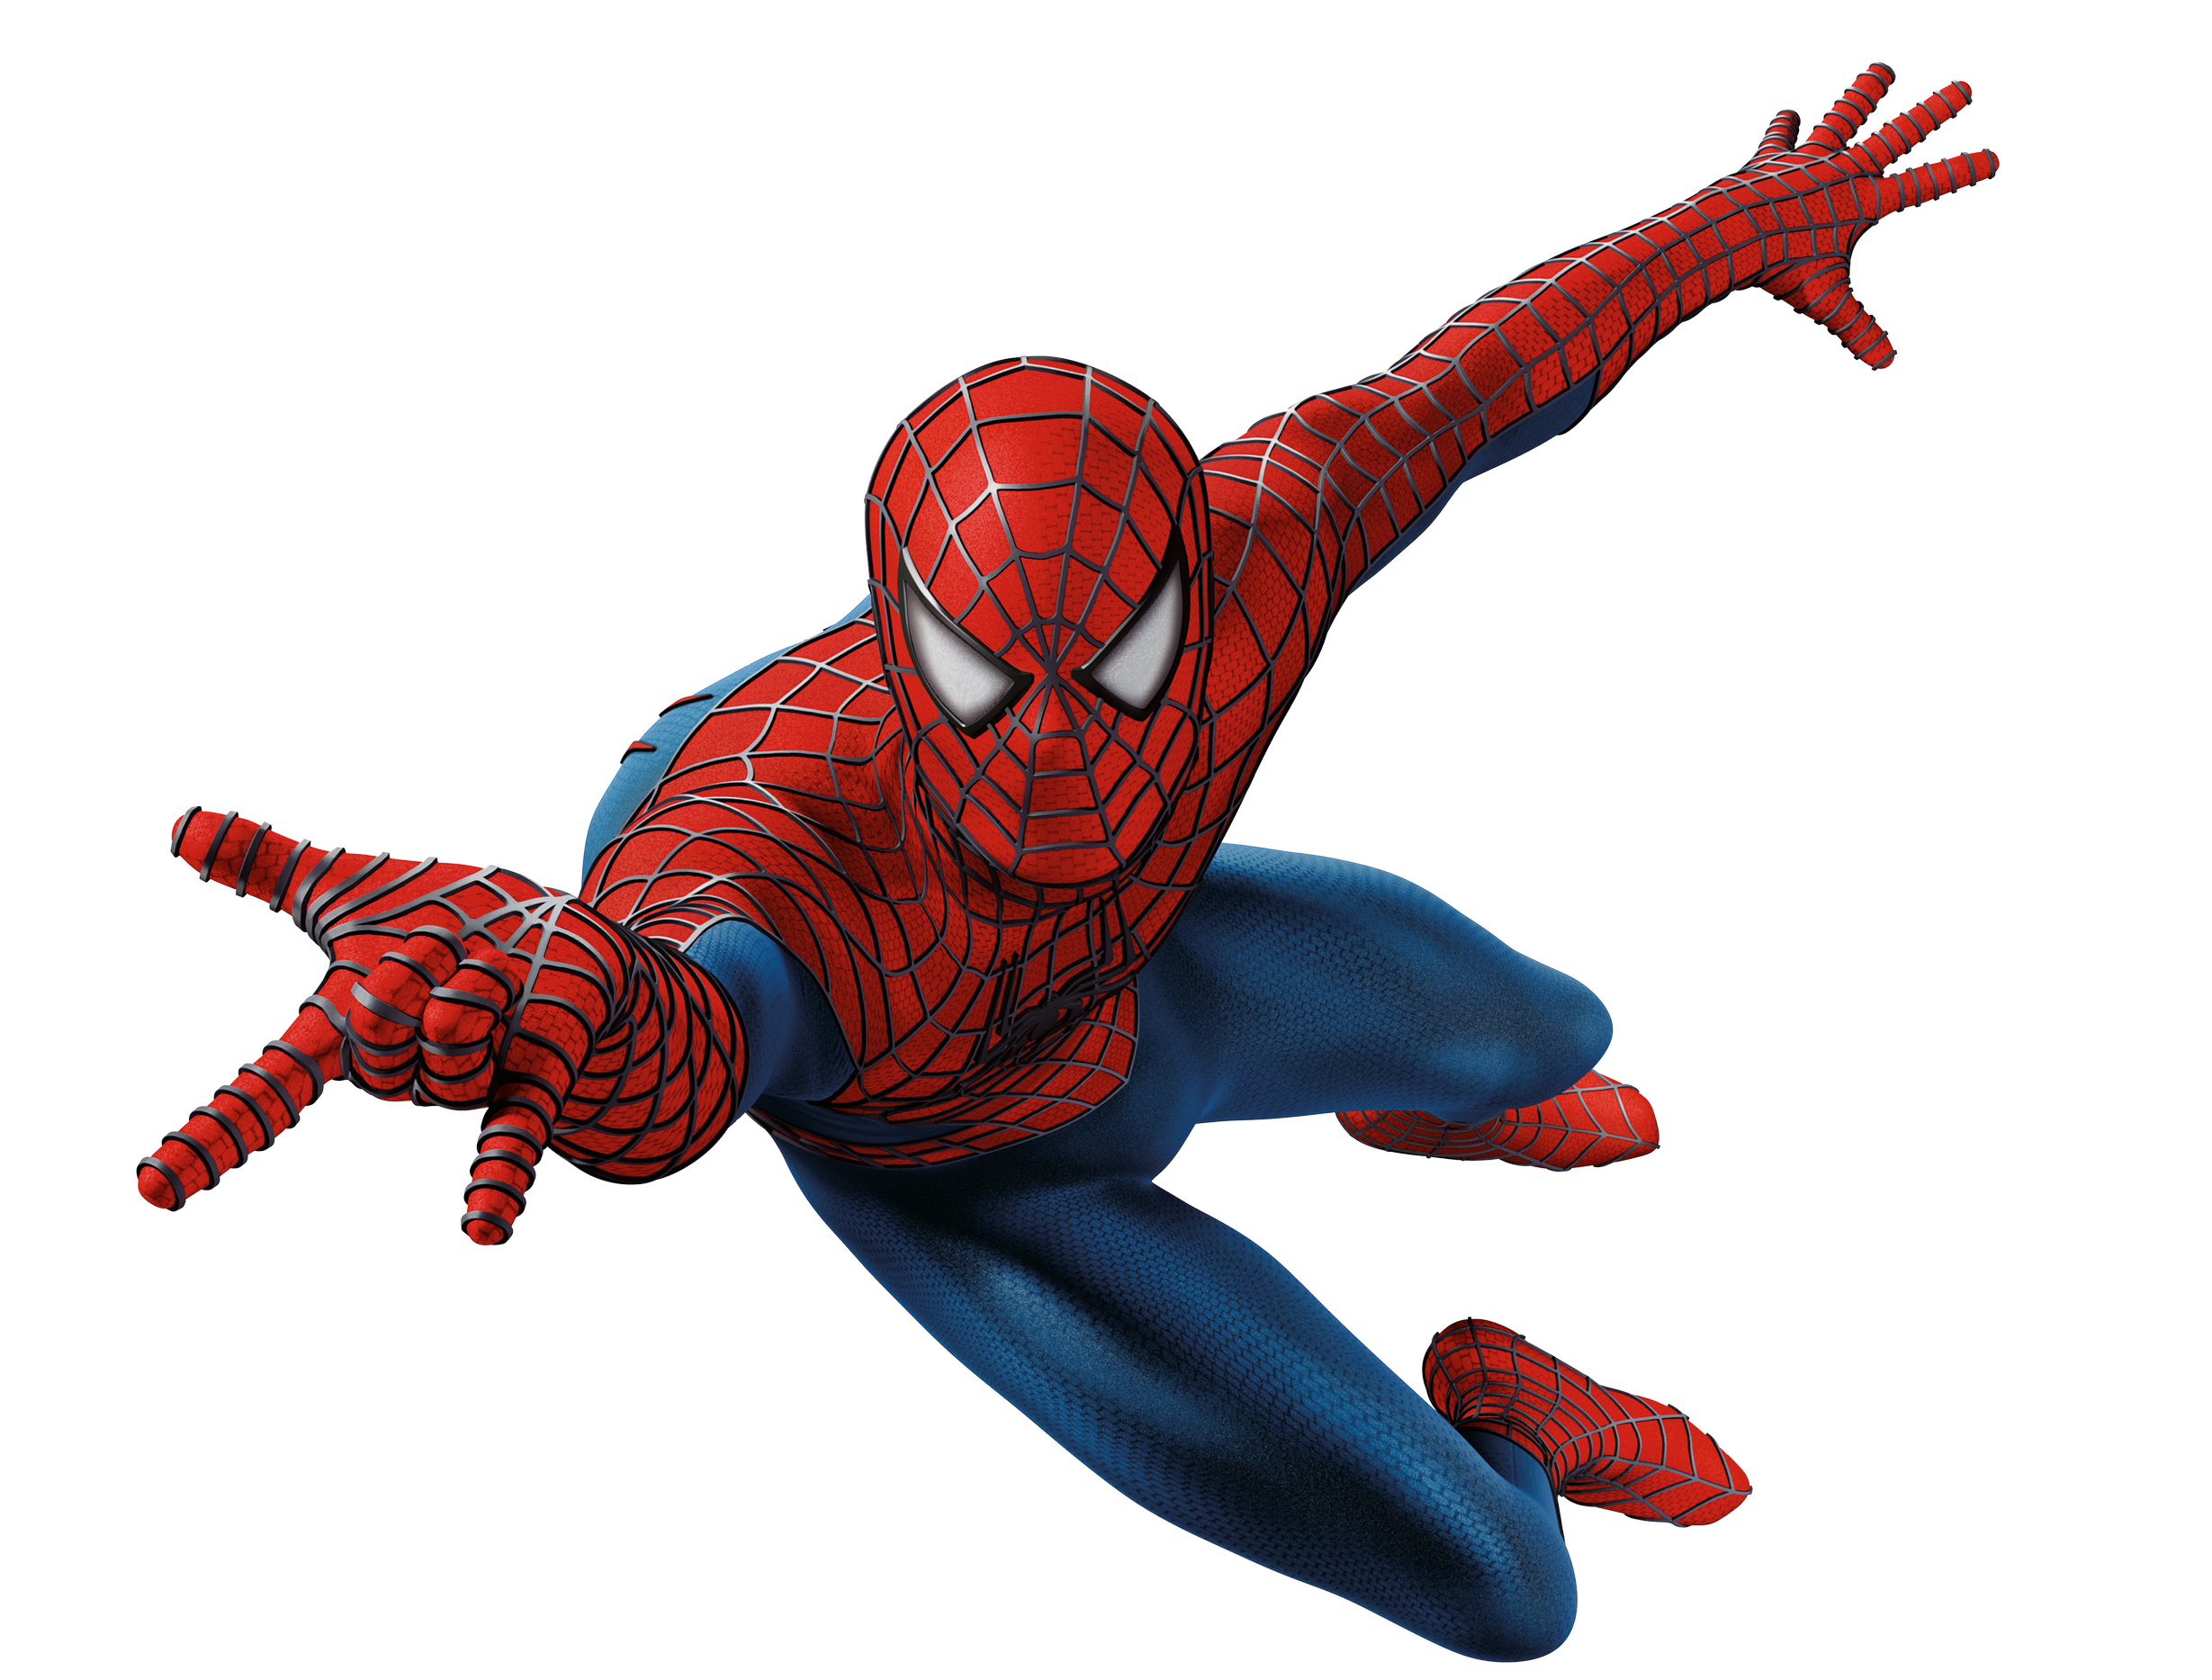 Spiderman Png Image Spiderman Animated Clipart Spiderman Cartoon